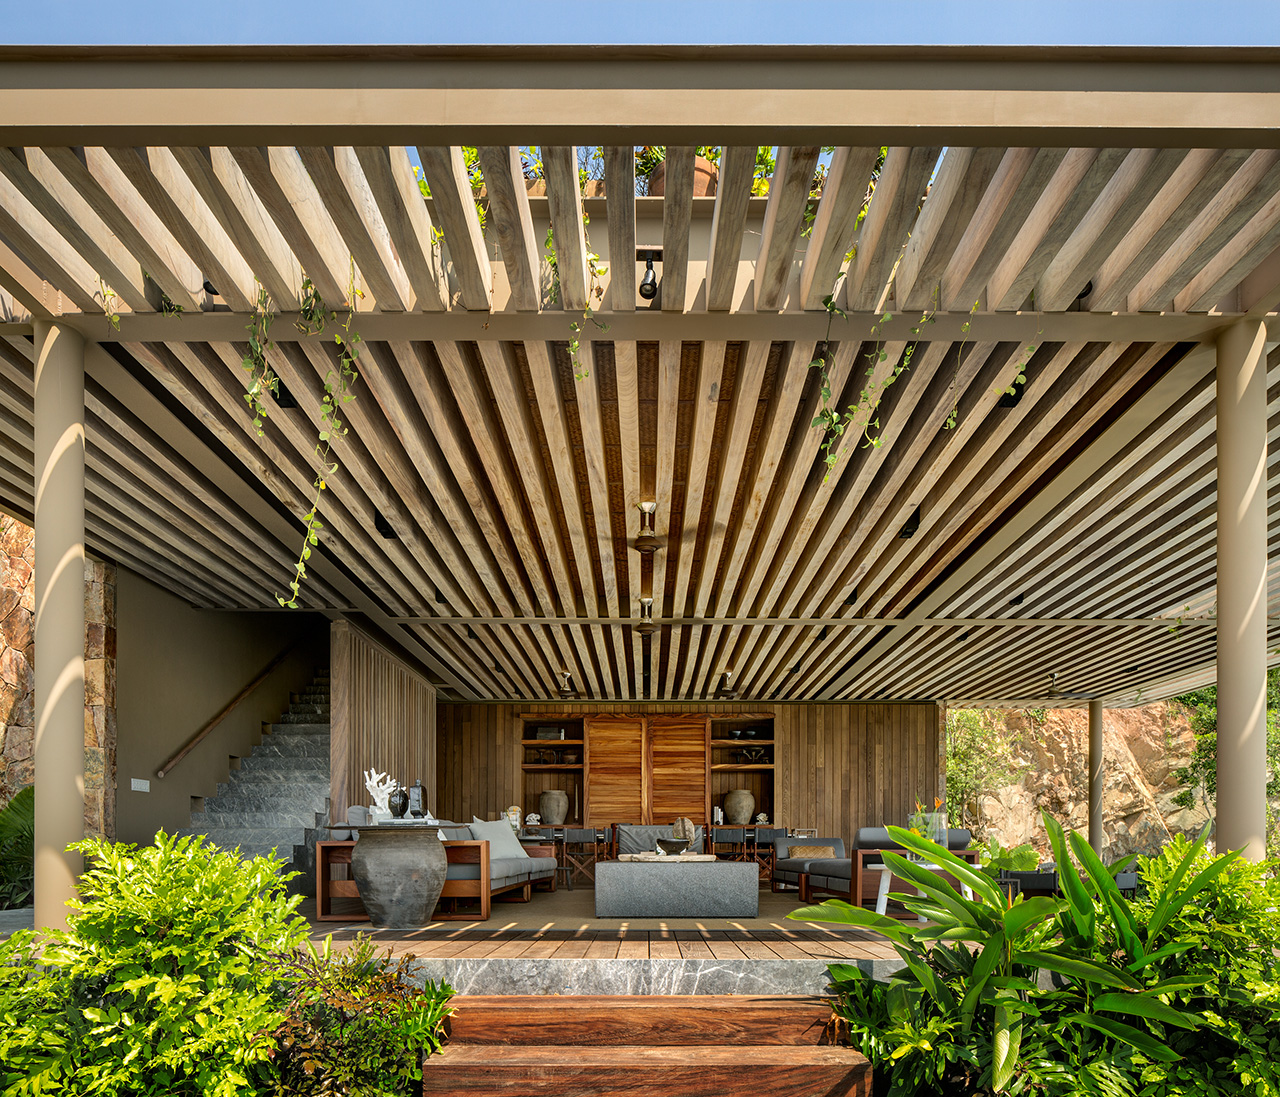 The structure considers the sun's heat and is designed to provide comfort with shaded gathering spaces.